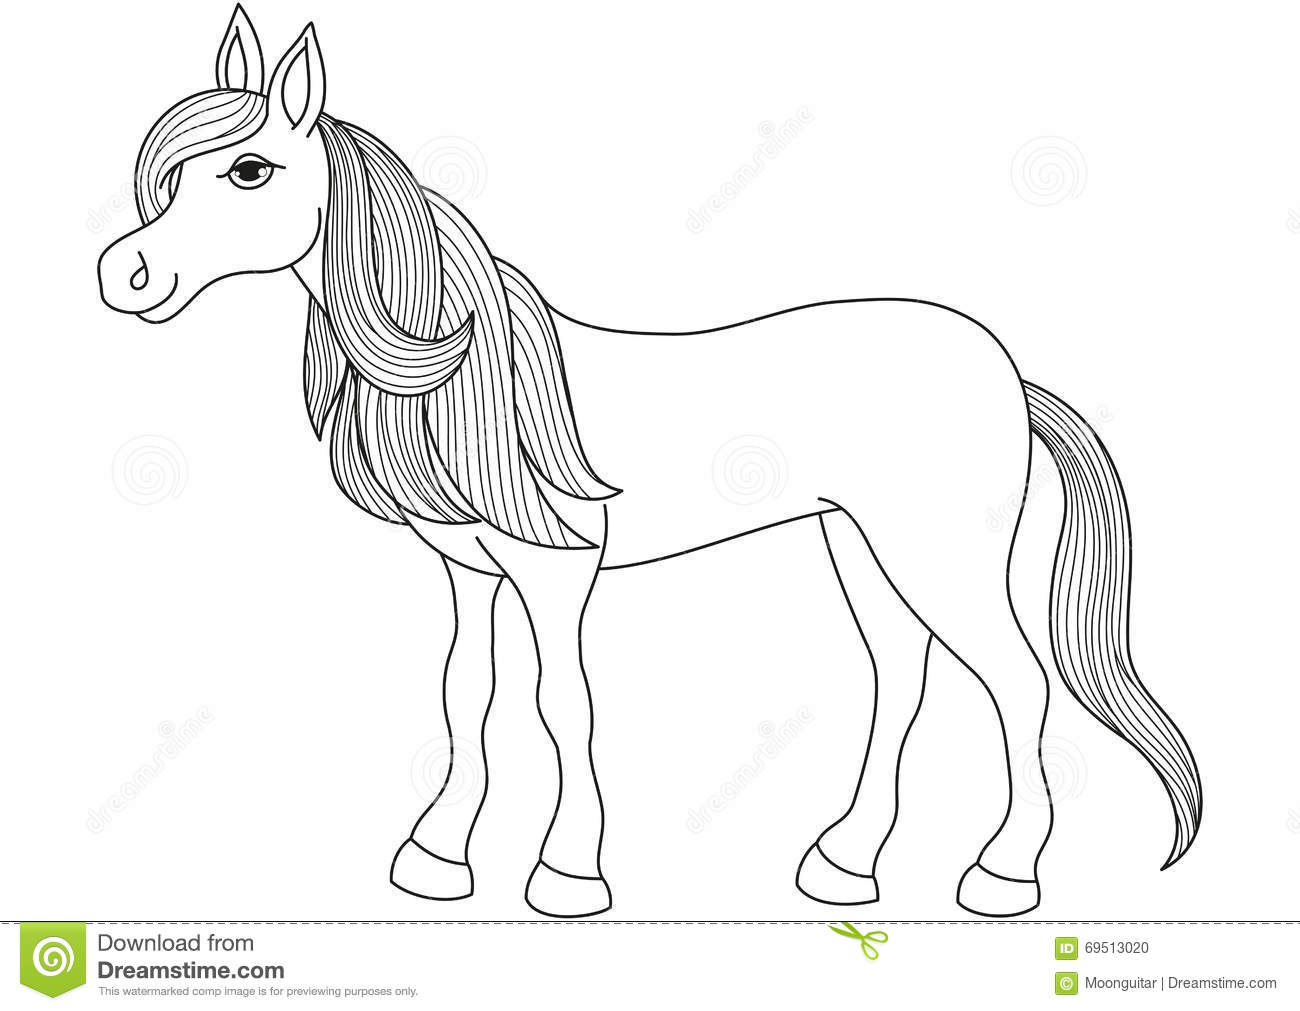 Charming cartoon horse with long golden mane and tail for Immagini cavalli da disegnare